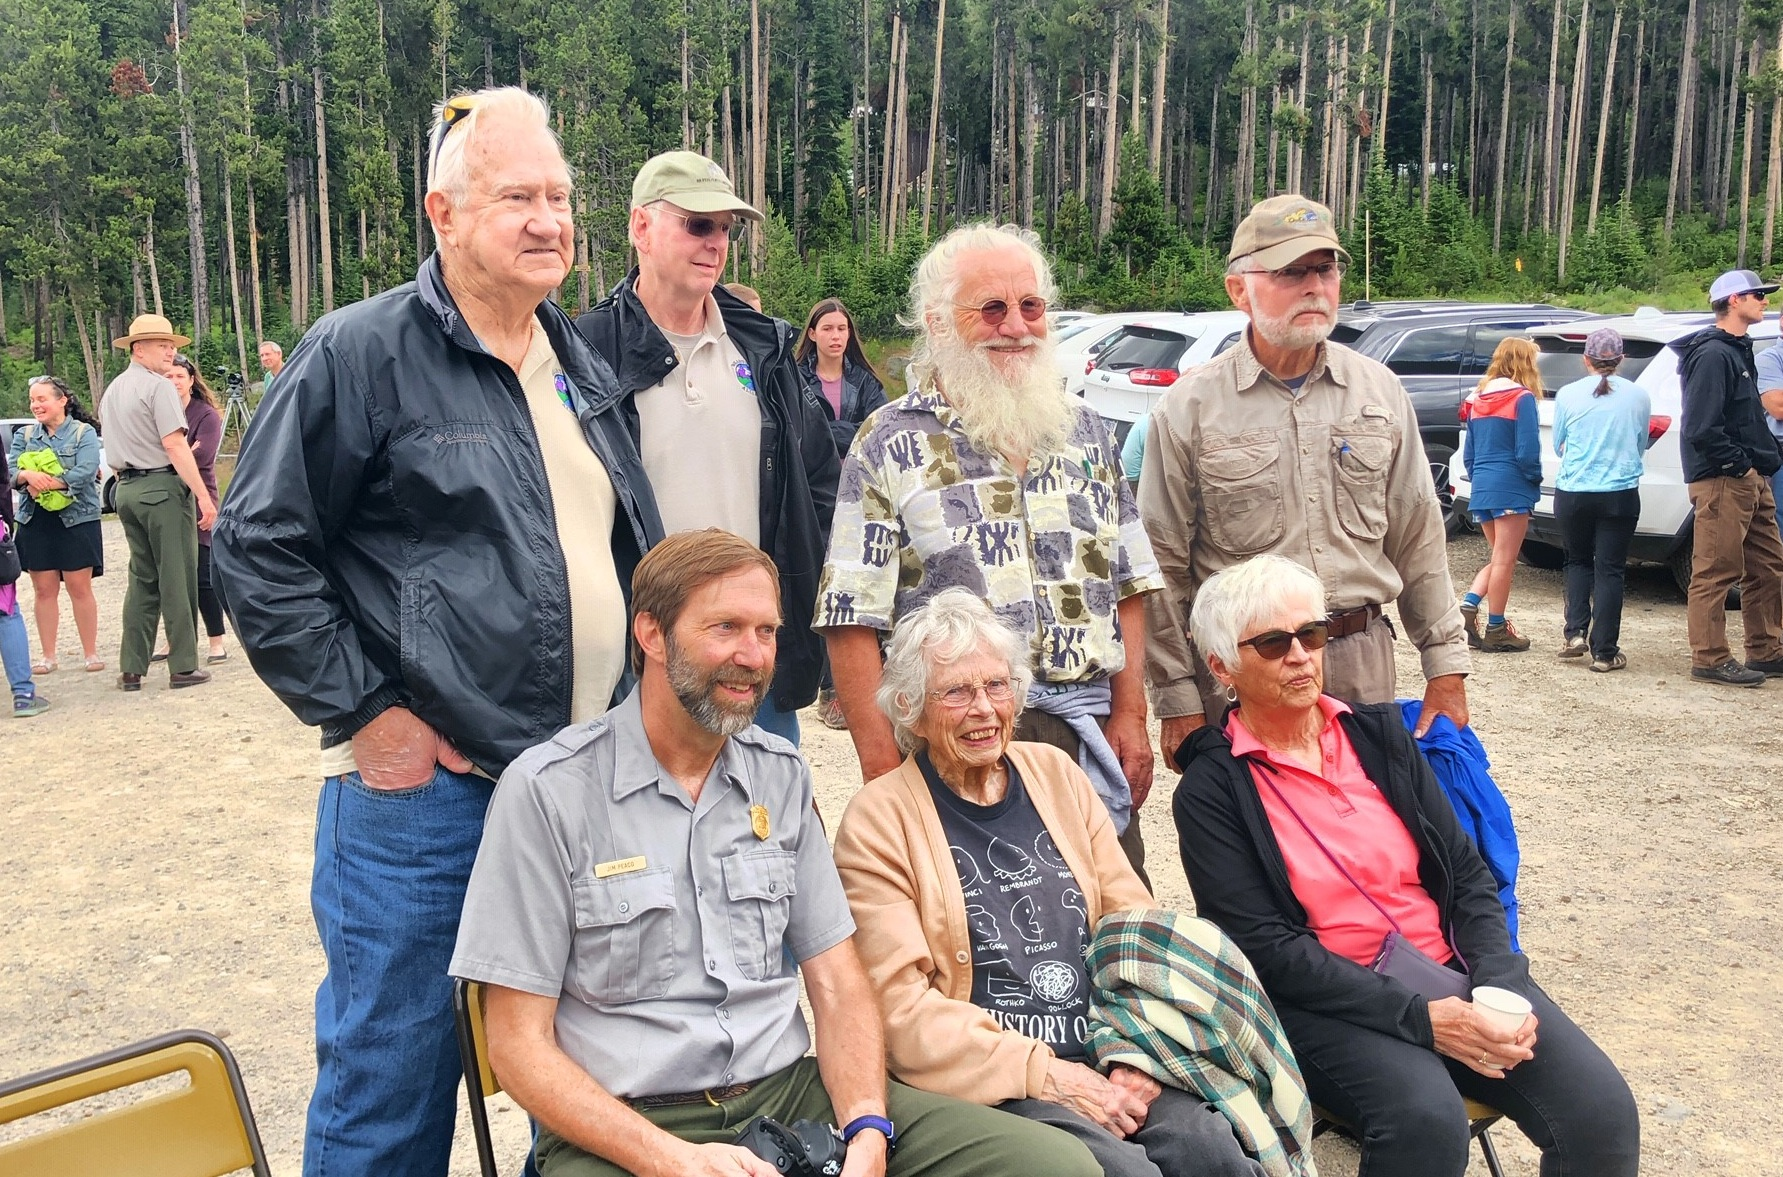 Beartooth Alliance members following the July 18, 2019 celebration of delisting Soda Butte Creek from the Montana list of Impaired Waters. Front Row (left to right): Jim Peaco, Nellie Israel, Carole Oldemeyer. Back Row (left to right): Dean Bladow, Tom Bird, Rich Clawson, Mike Whittington. (Photo GYC/Joe Josephson.)